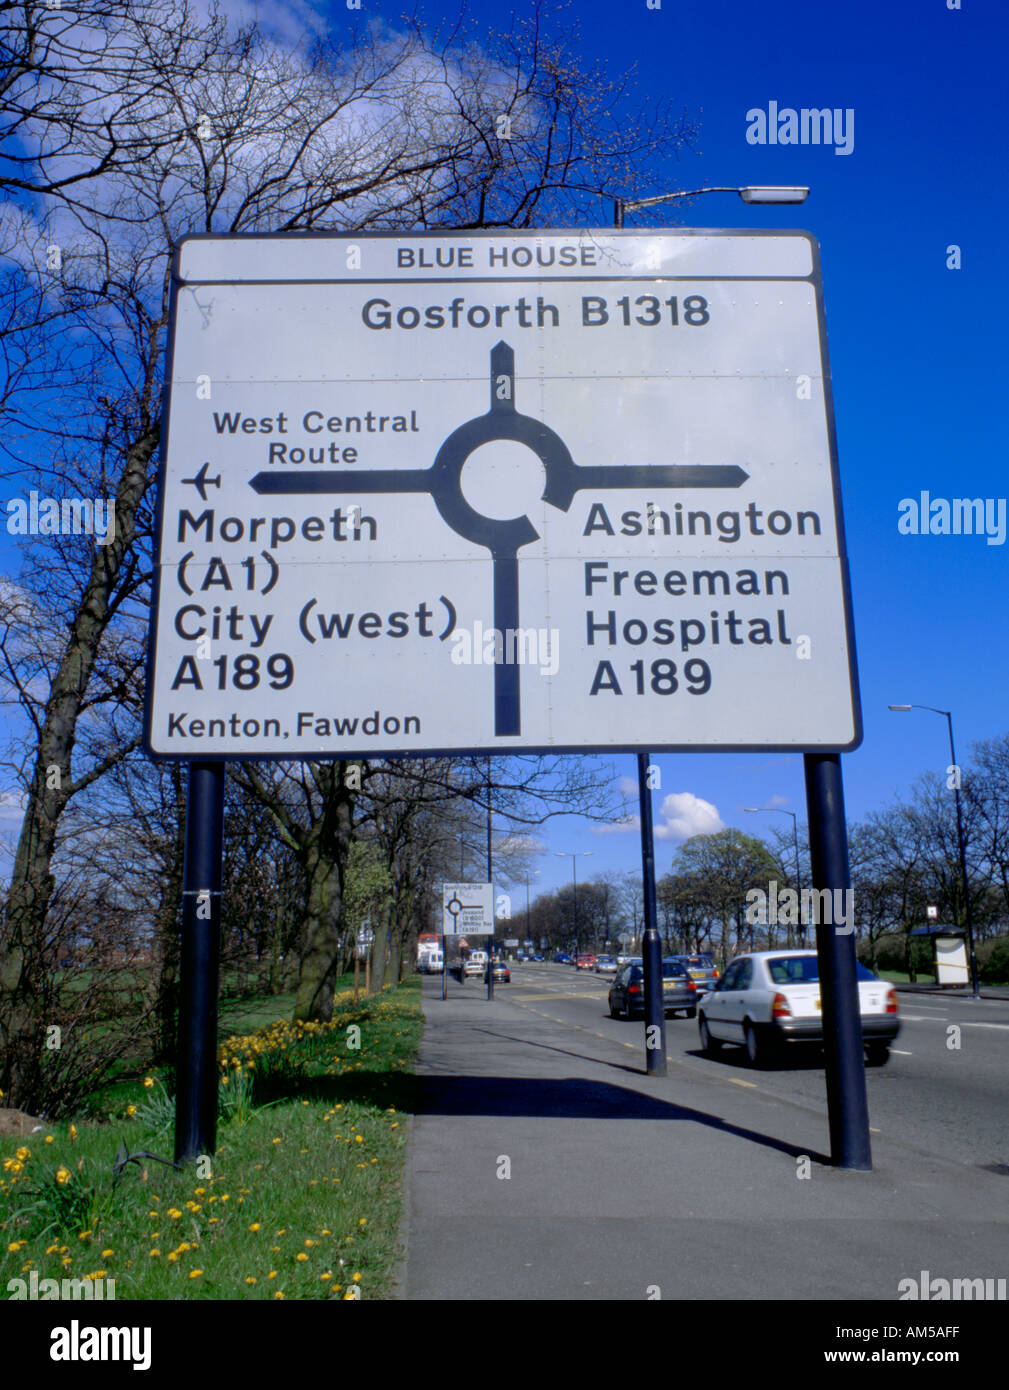 Road sign at the approach to a roundabout, Newcastle upon Tyne, Tyne and Wear, England, UK. Stock Photo